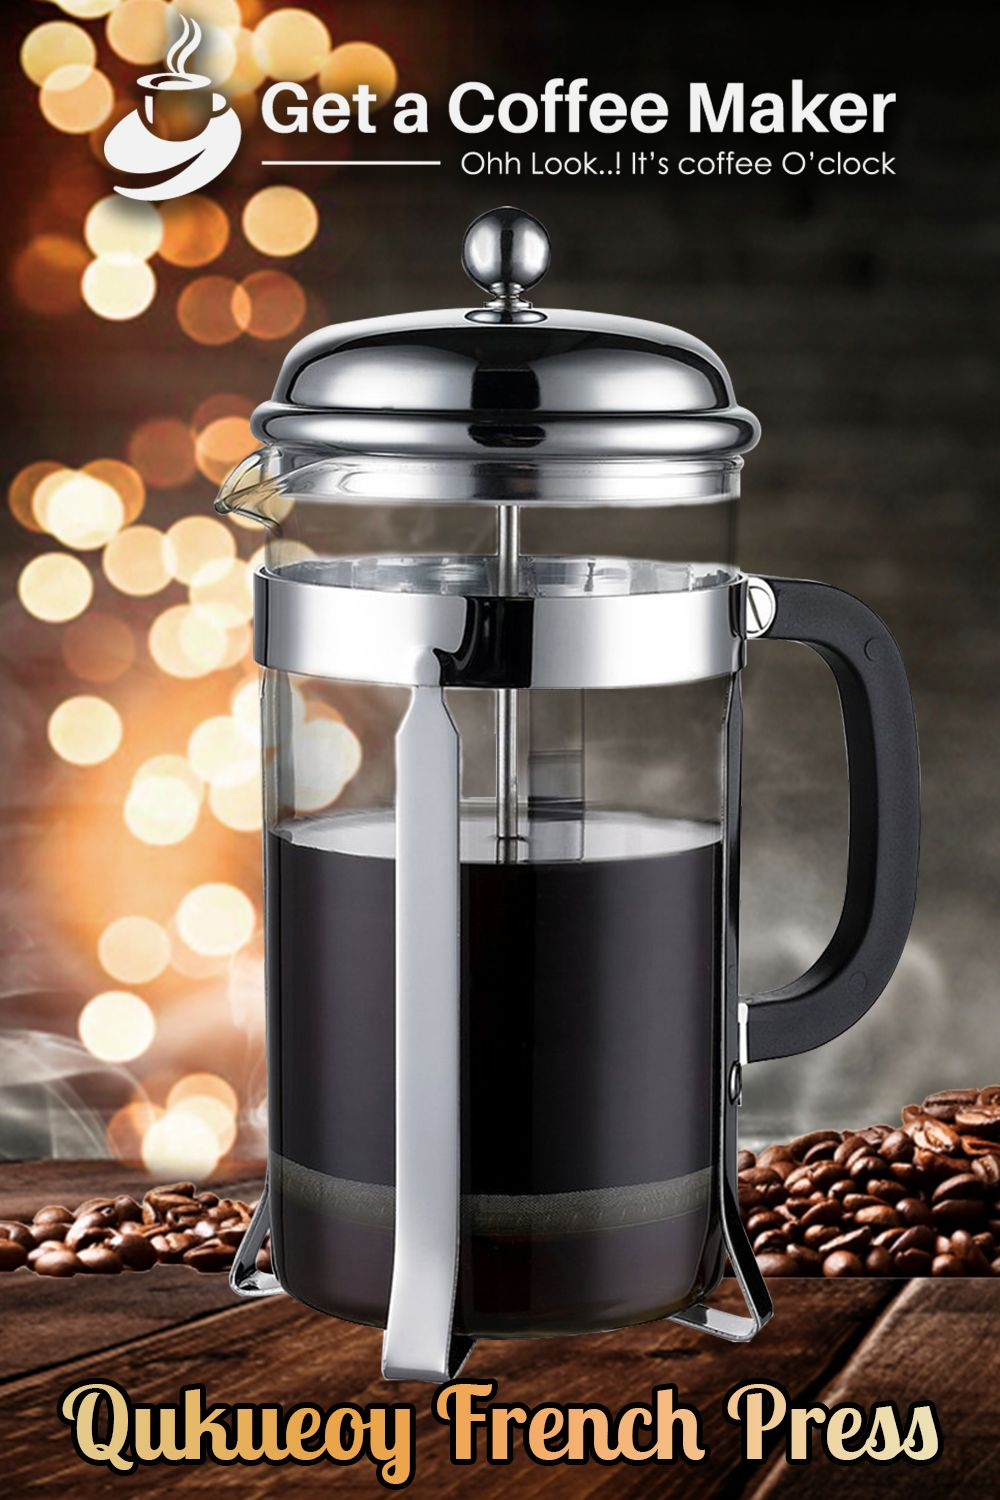 Top 10 French Press Coffee Makers Feb 2020 Reviews Buyers Guide French Press Coffee Maker Coffee Maker Reviews Coffee Maker